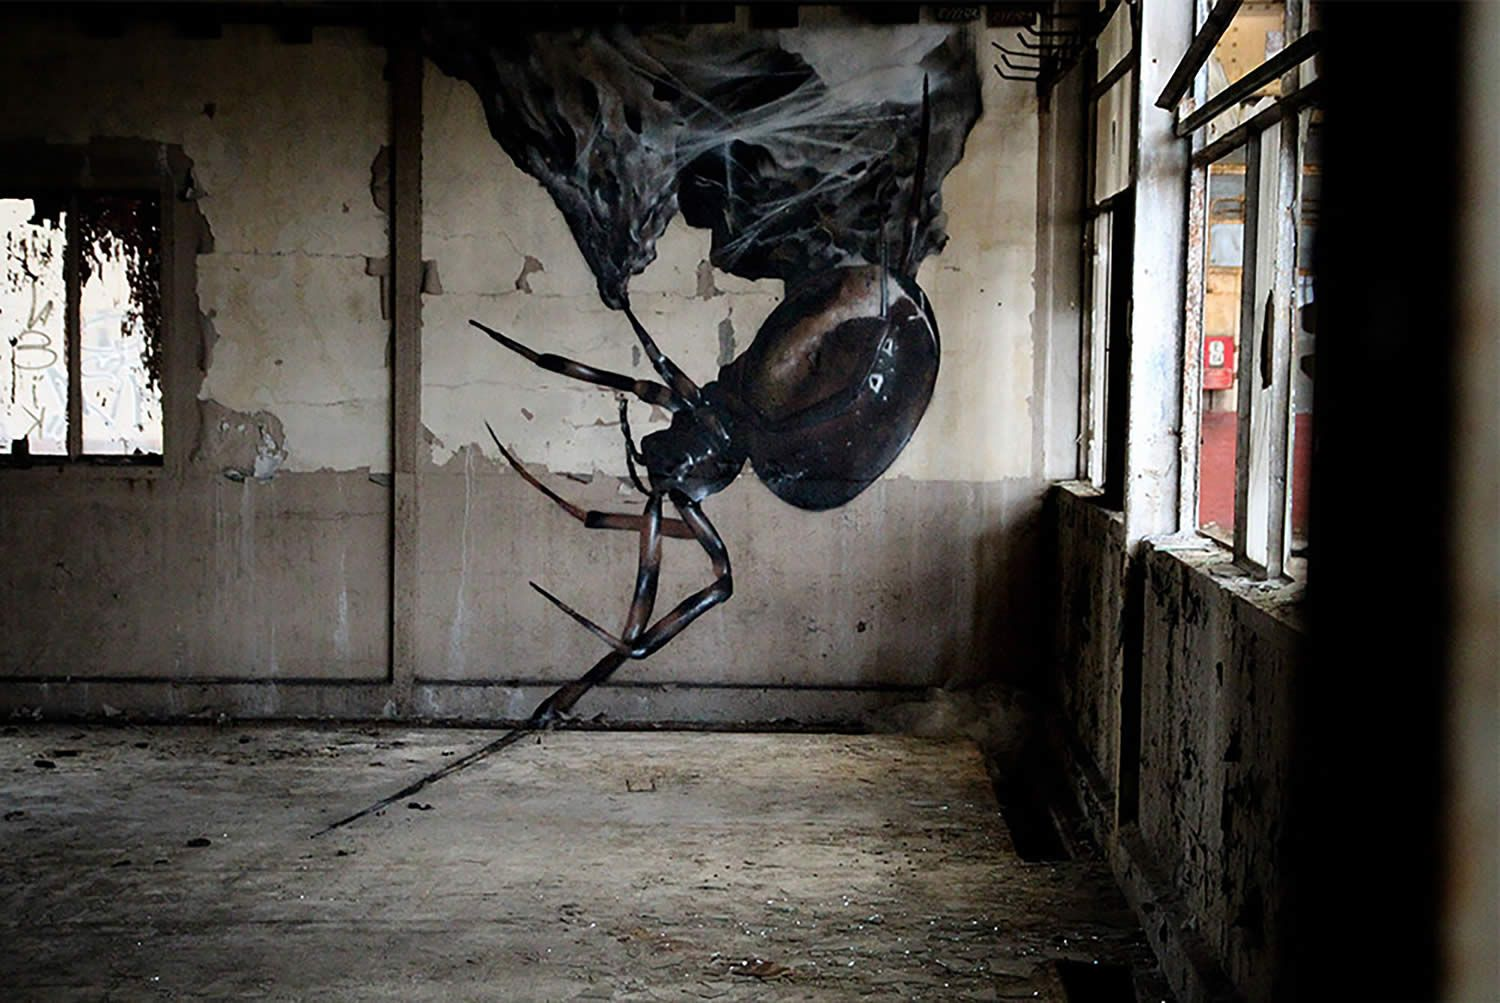 3d insects and giant birds the graffiti art of mantra